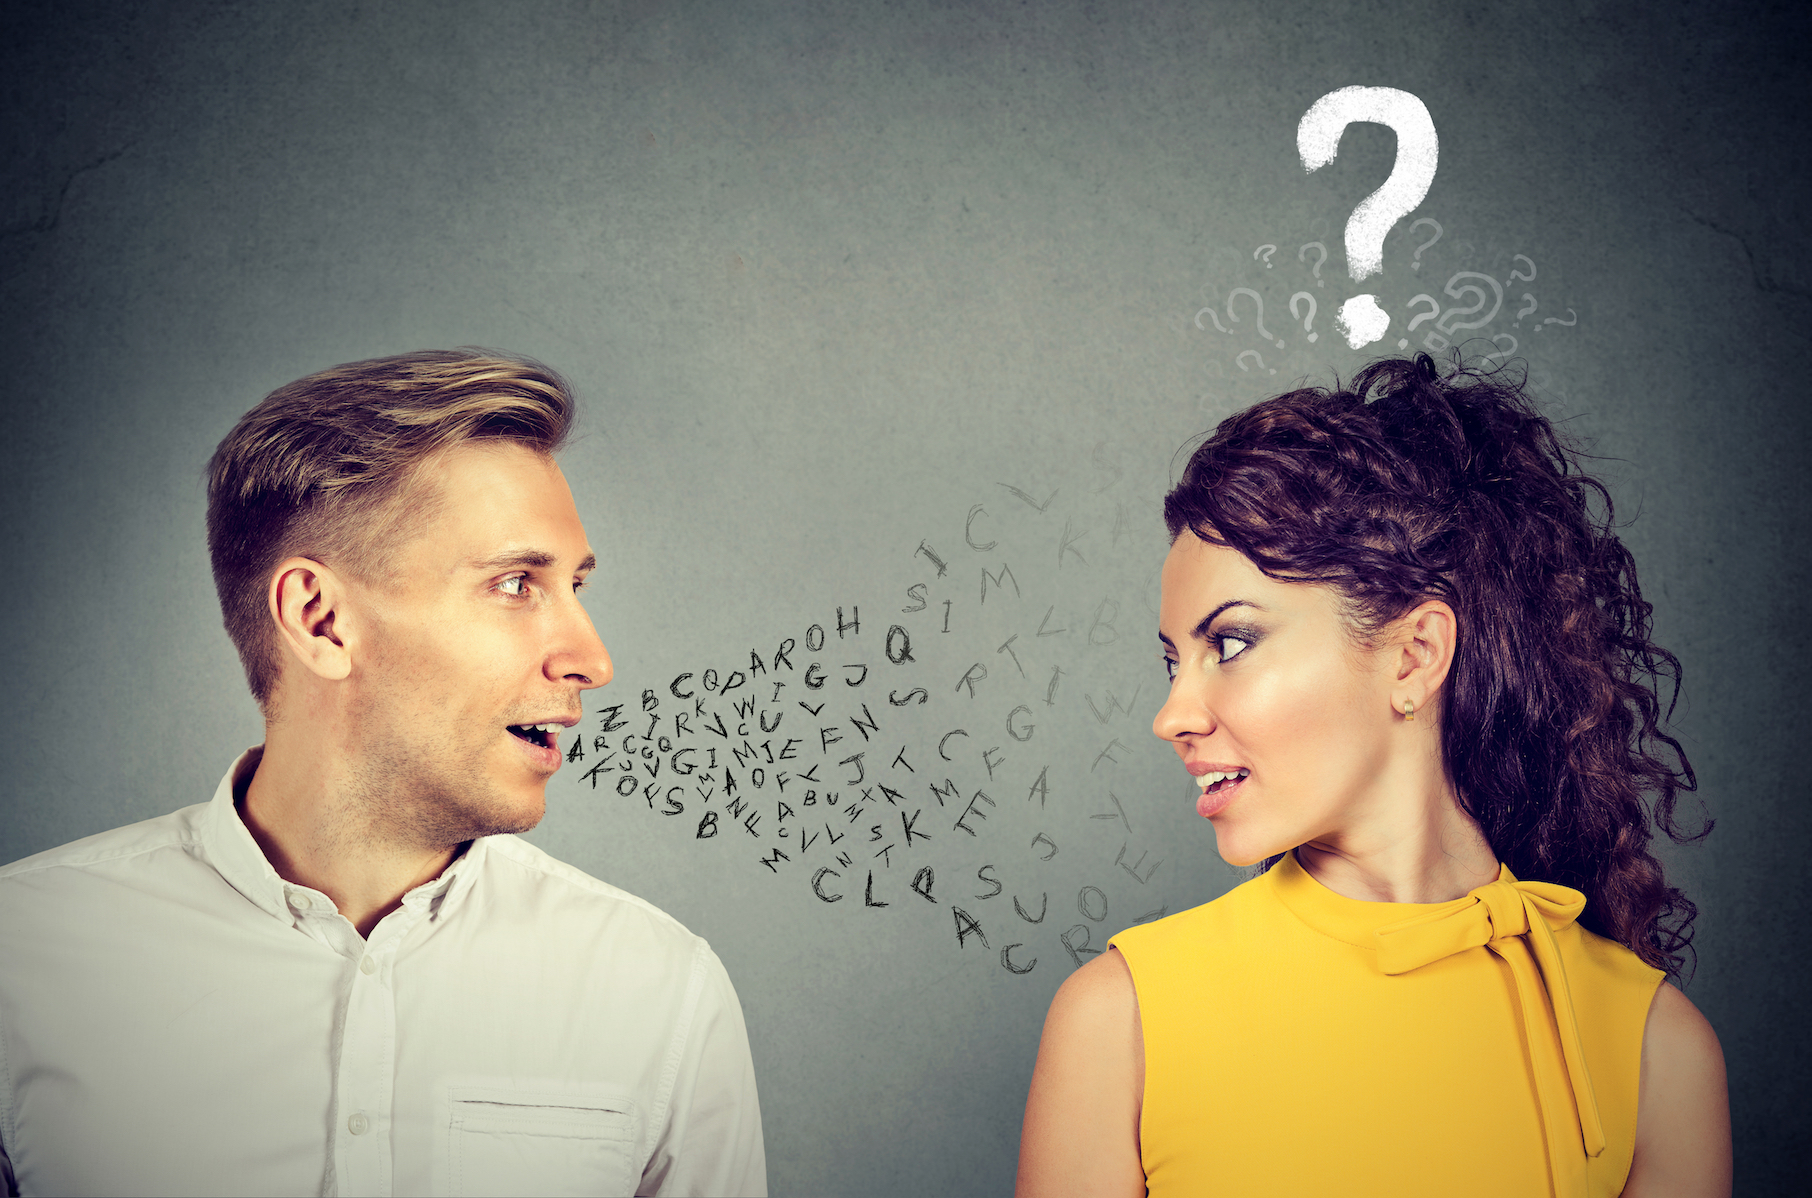 According to a recent study from the Society For Neuroscience, speech is most often misinterpreted when there is little difference between what we expect to hear and what is actually said.